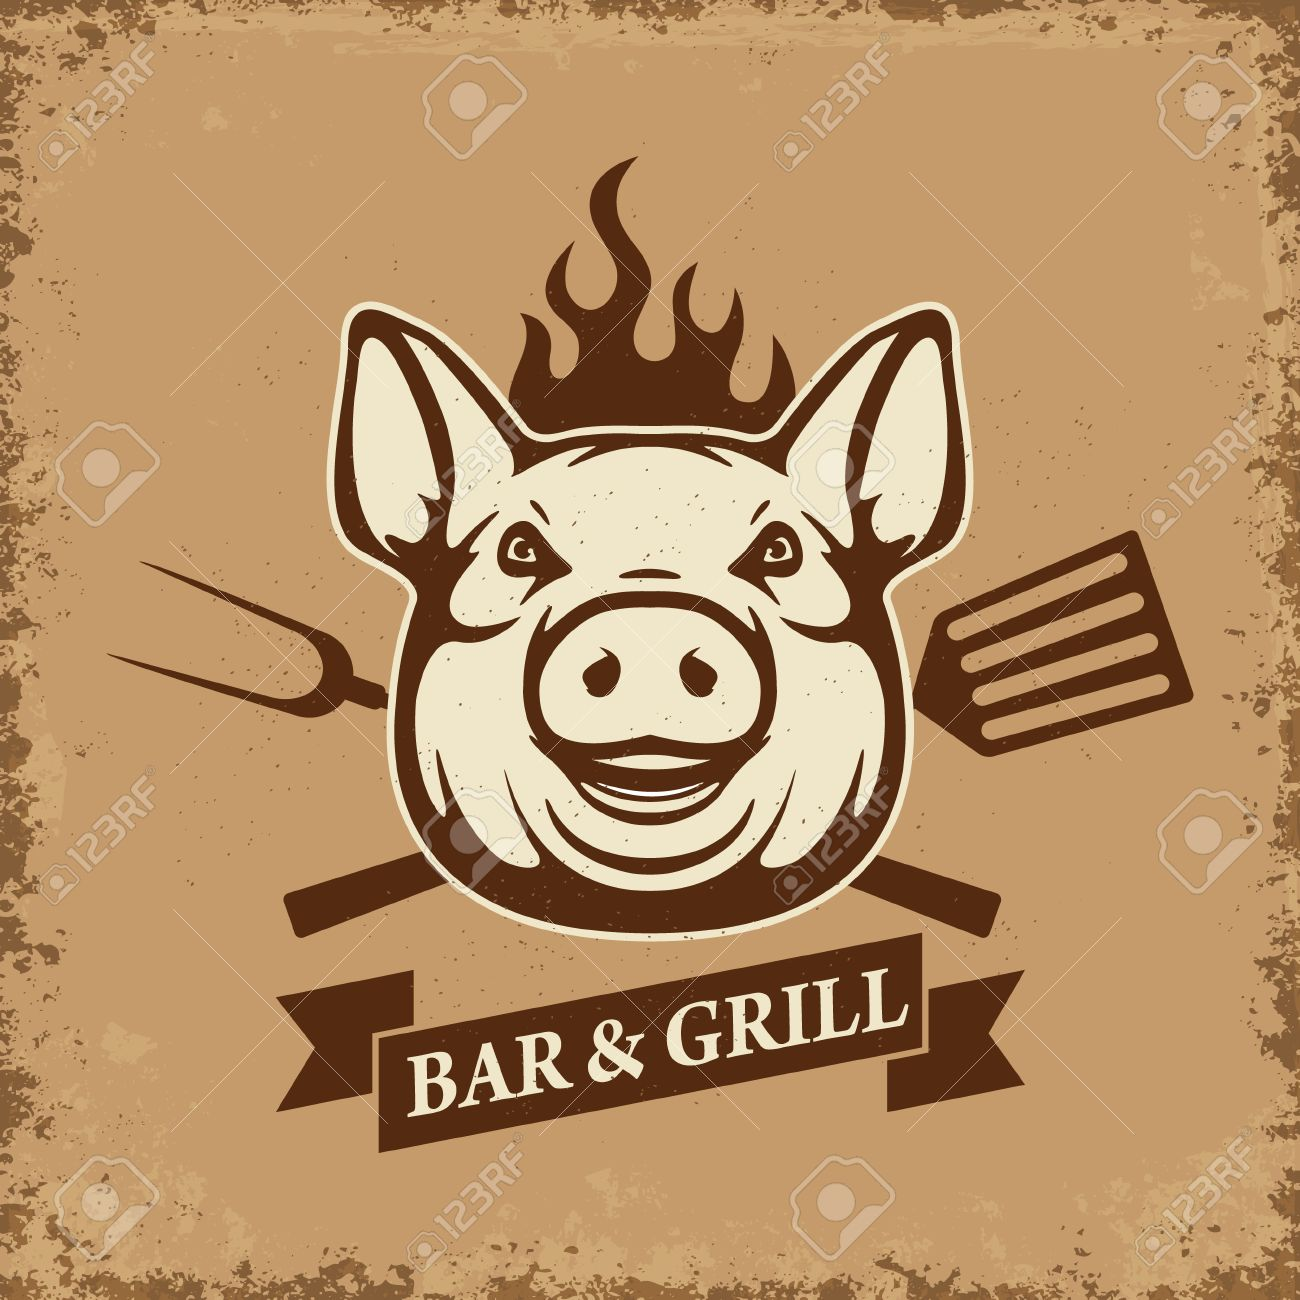 Bar and grill. Pig head with kitchen tools on grunge background. Design element for restaurant menu, poster. BBQ invitation card. Vector illustration. - 60506367